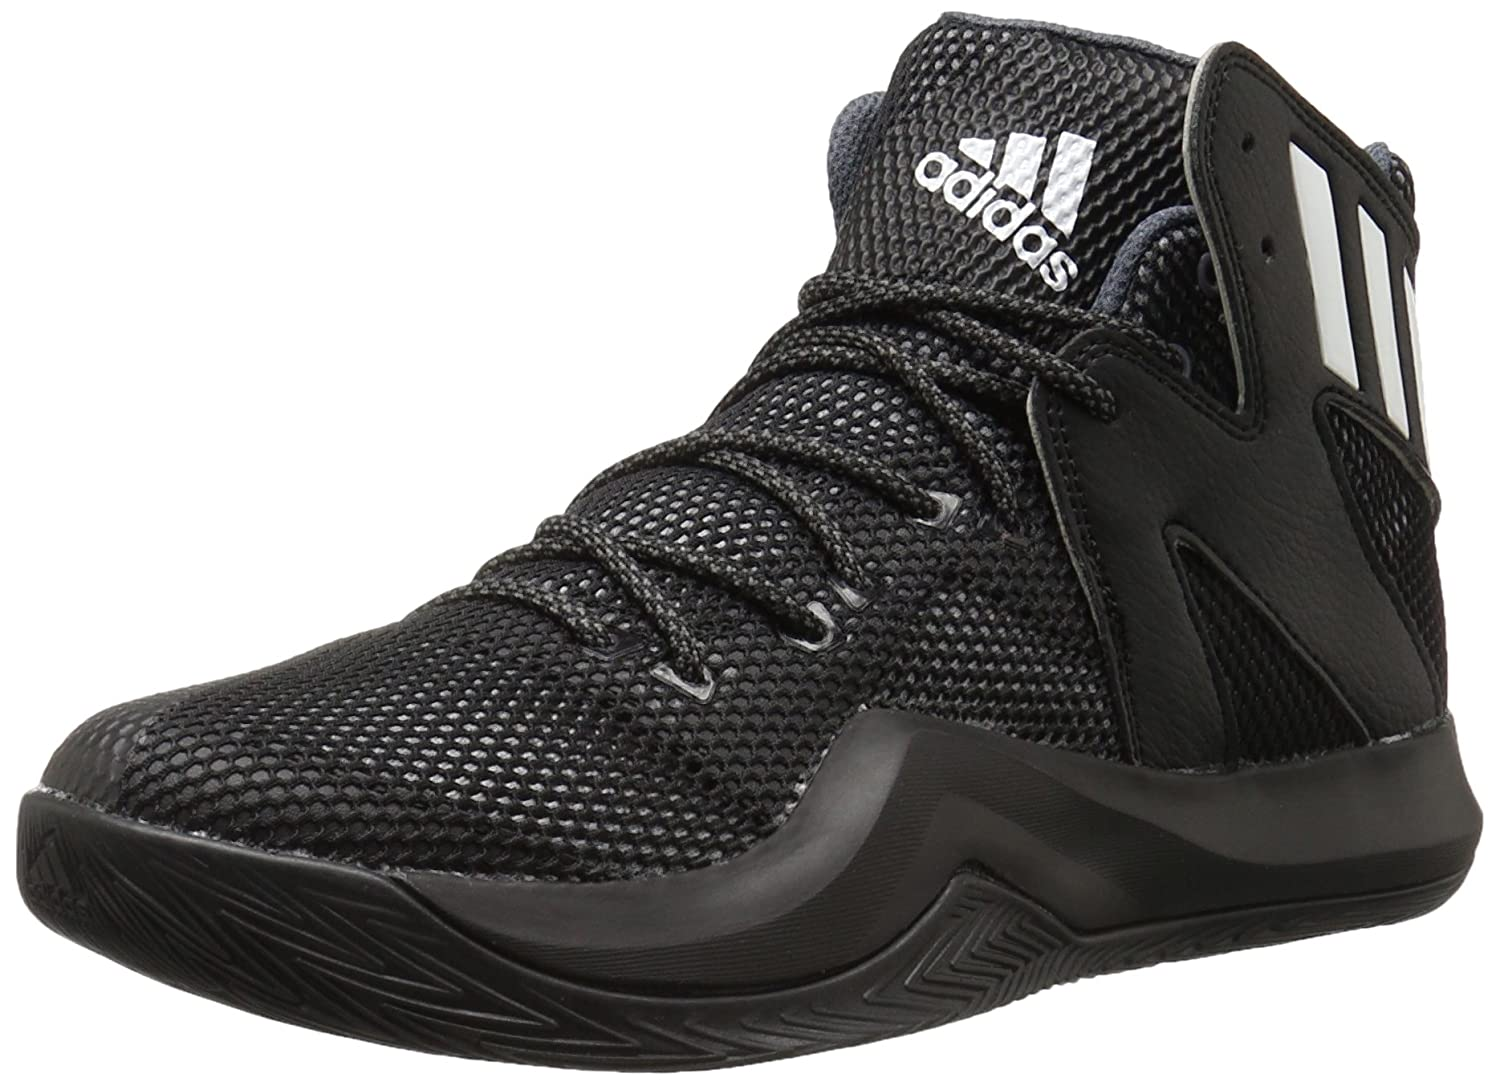 Most Cushioned Basketball Shoes